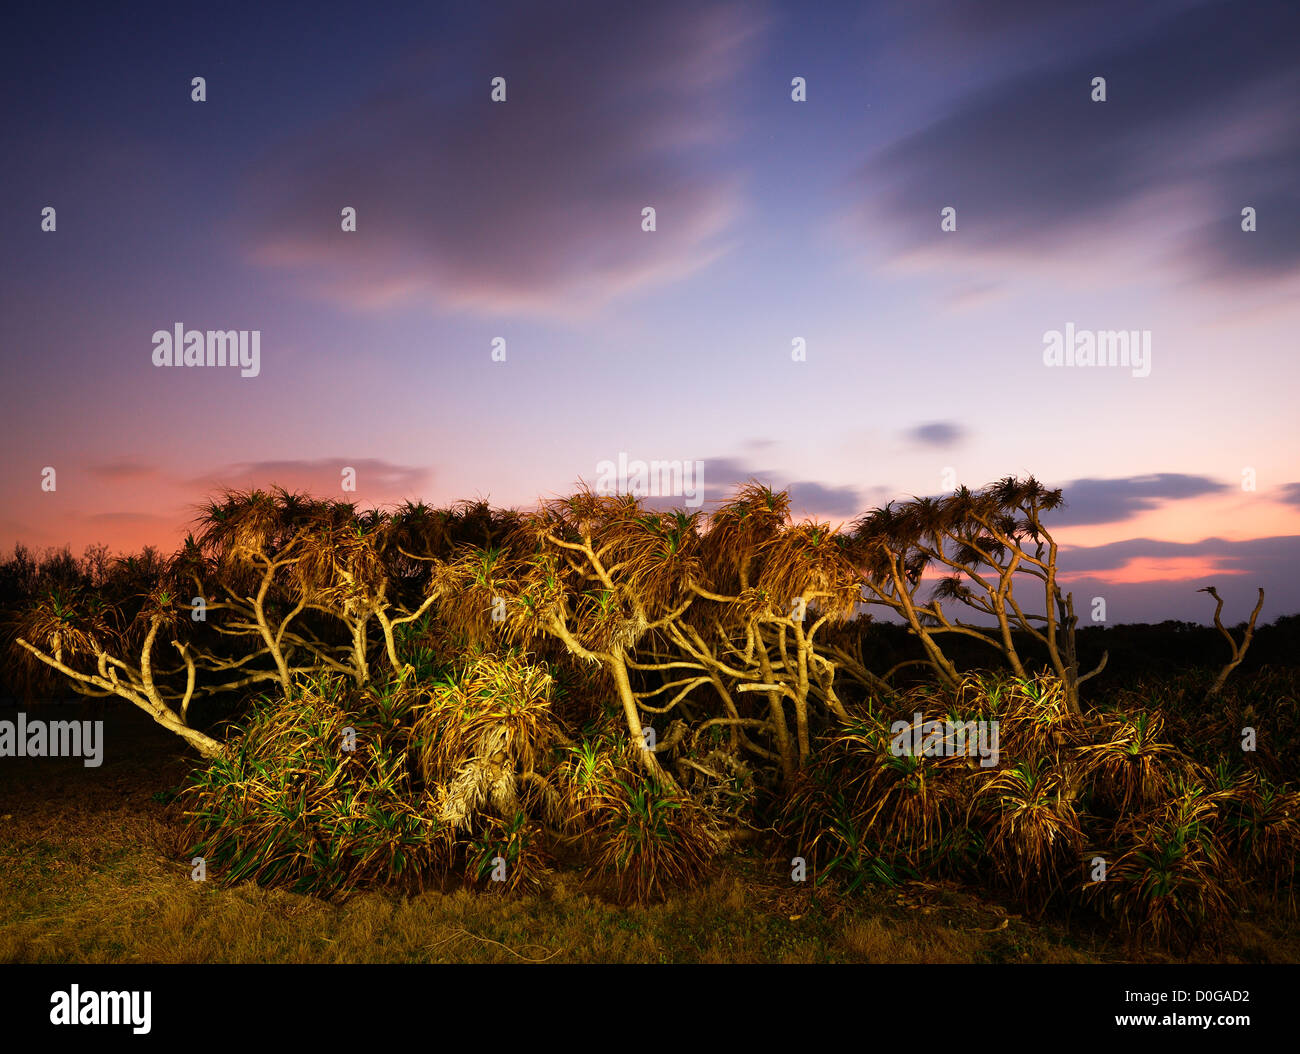 Tropical Plants at dusk in Manzamo, Okinawa - Stock Image